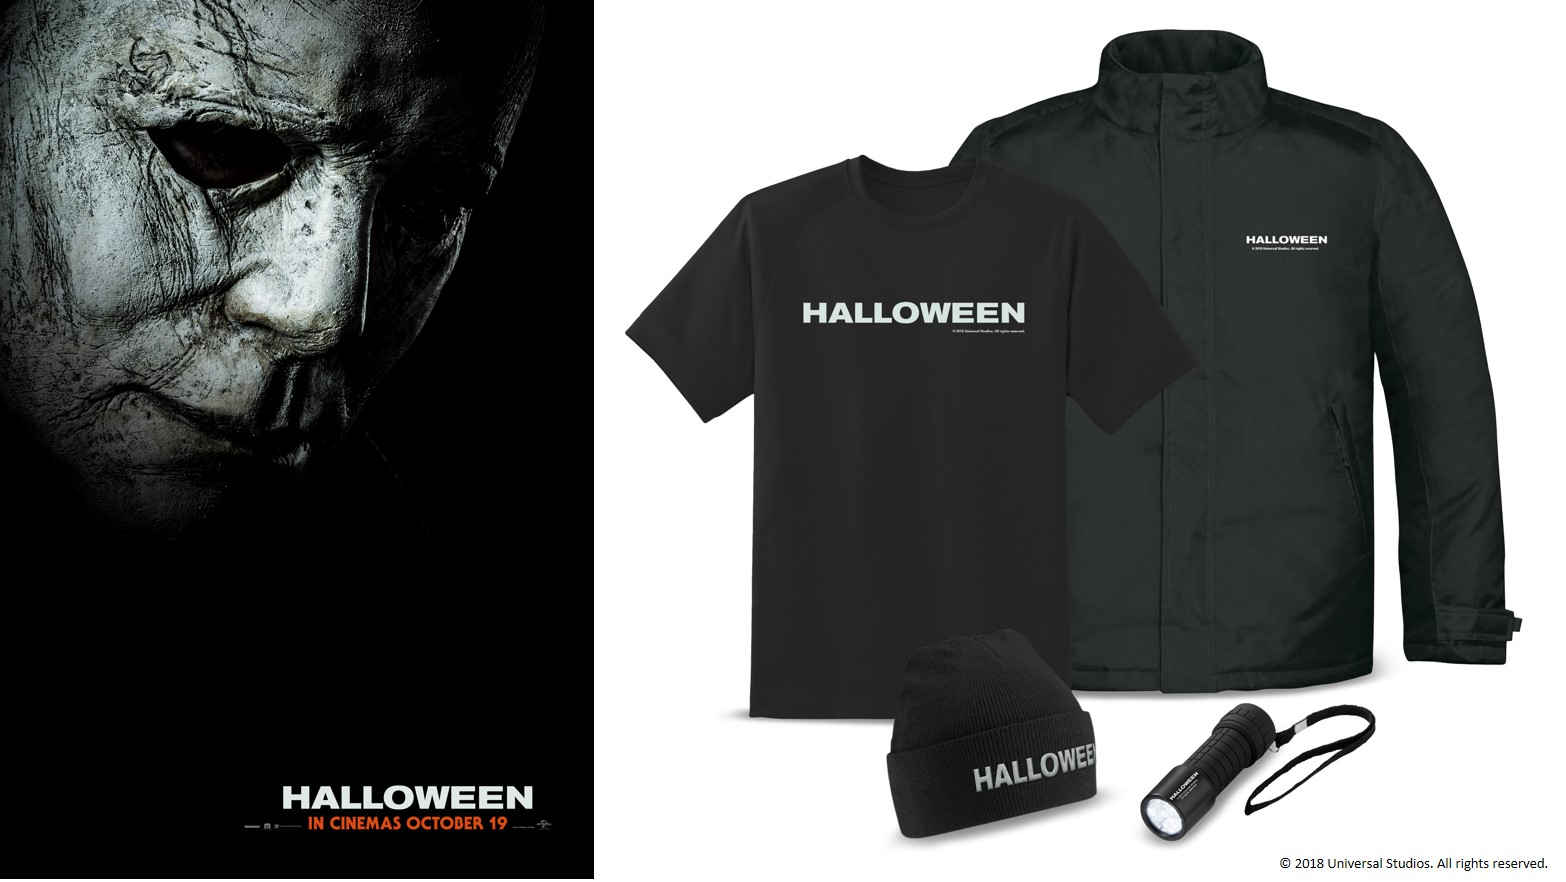 Halloween 2018 Movie Poster: Win Movie Merchandise With Halloween